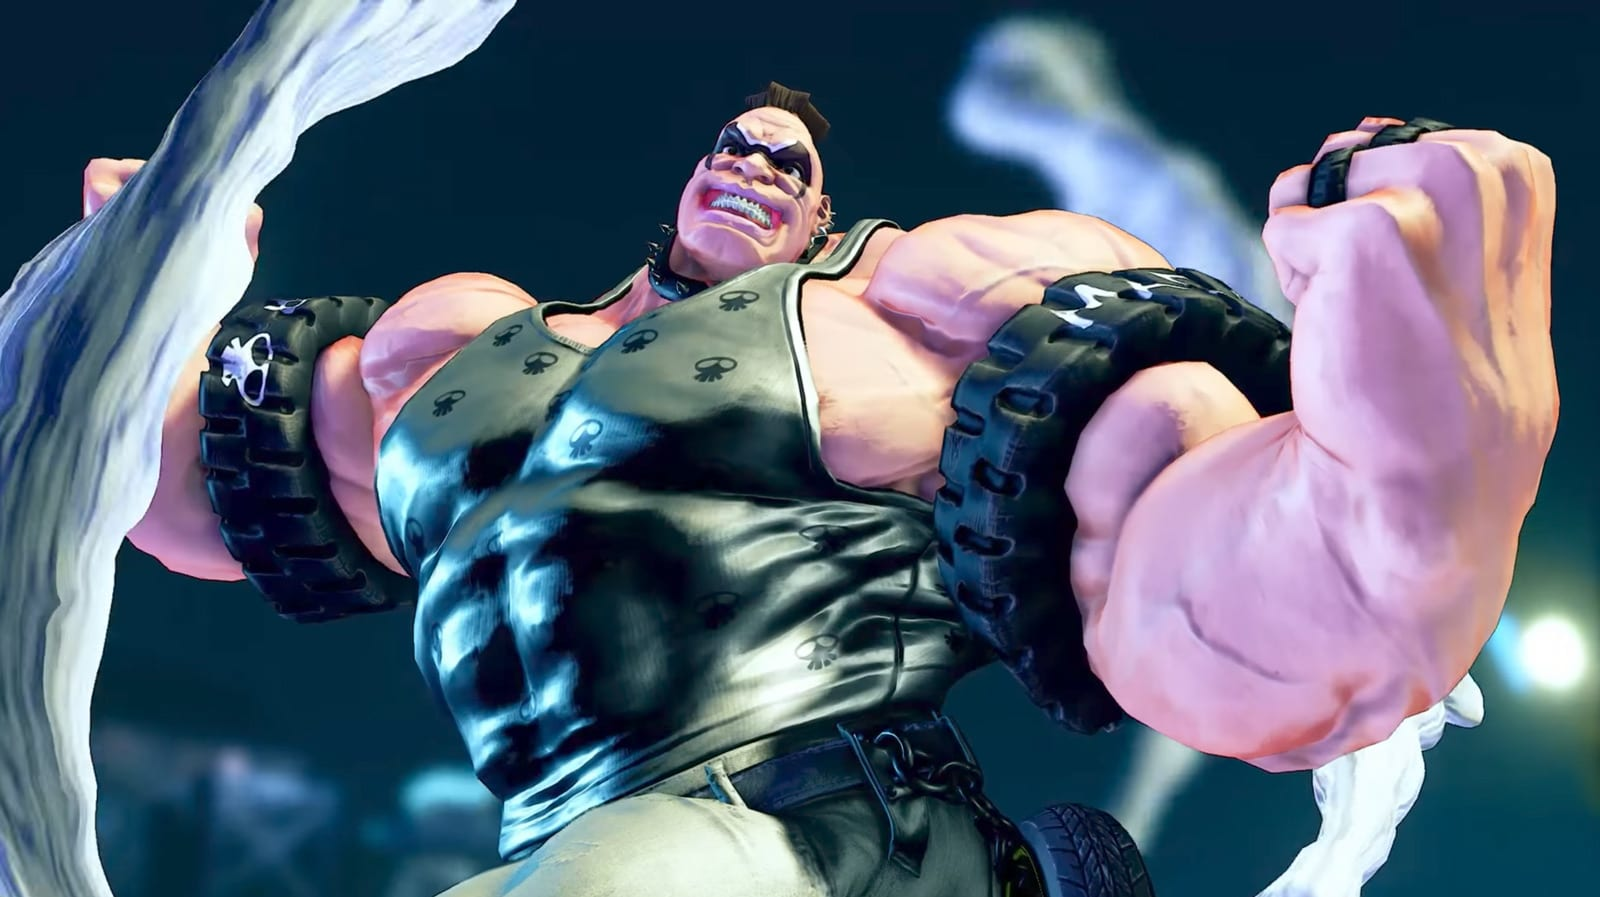 Final Fight' boss Abigail to join 'Street Fighter V' roster